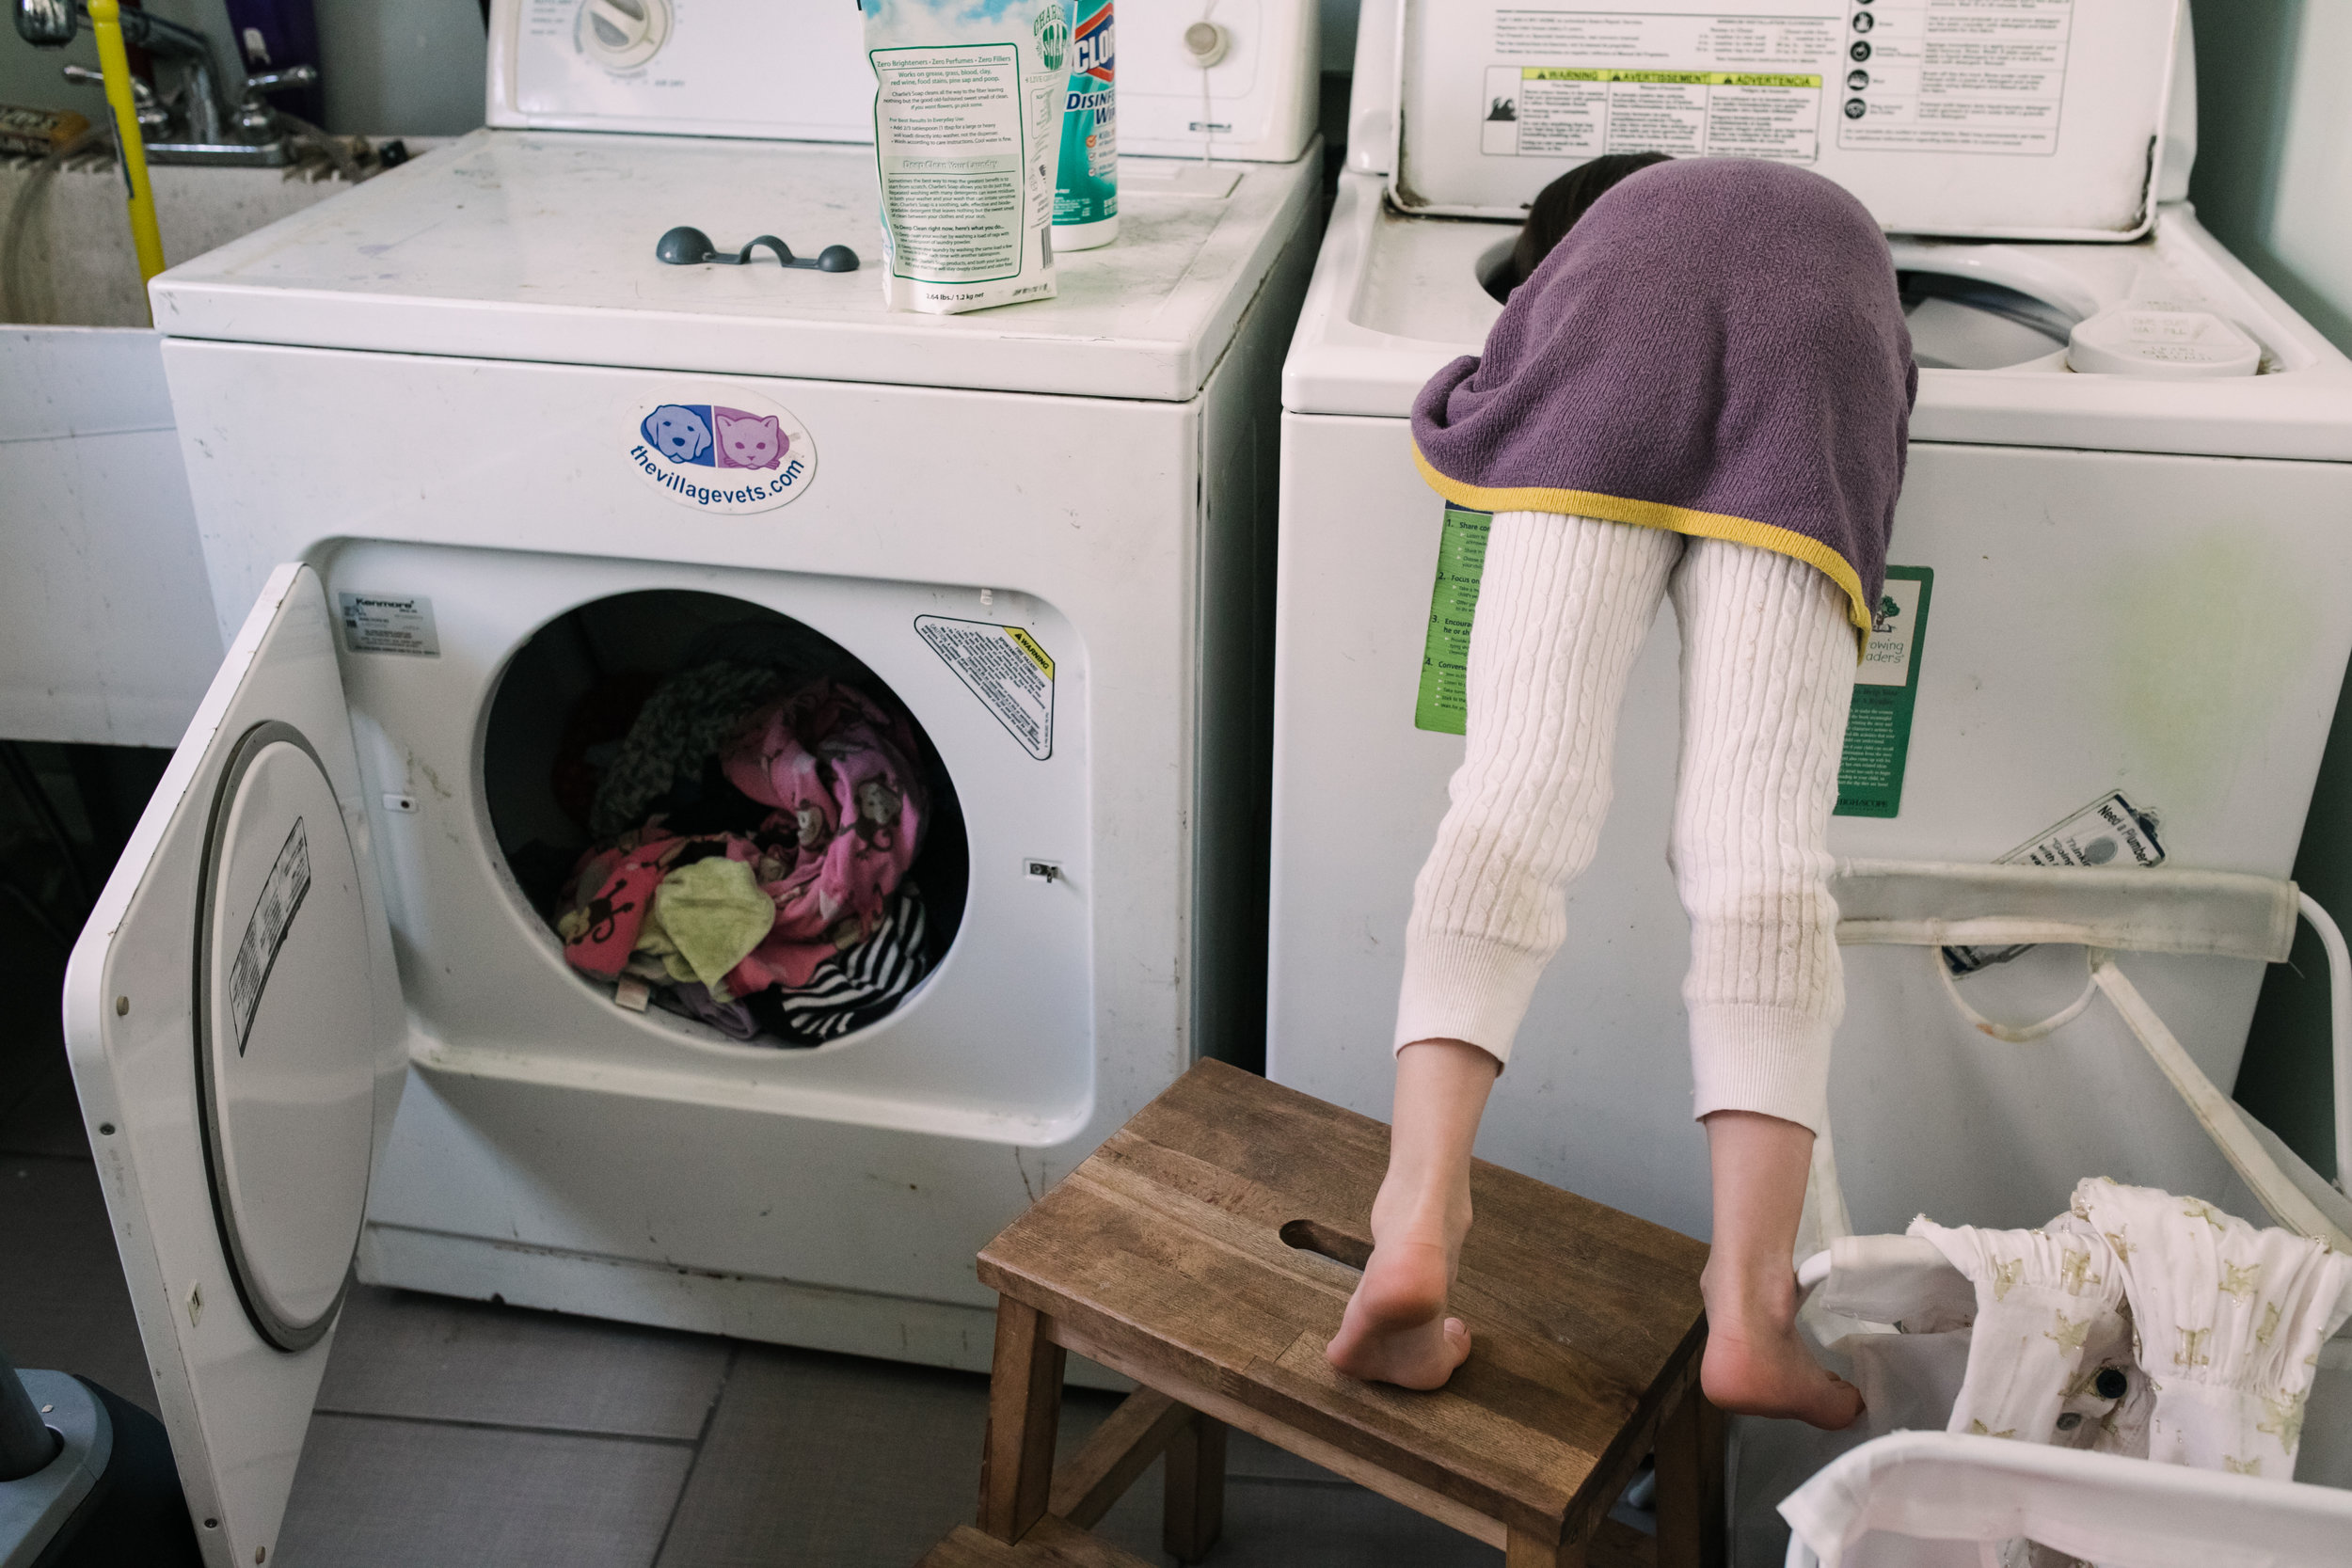 Child stands on a stool and leans over into the washing machine